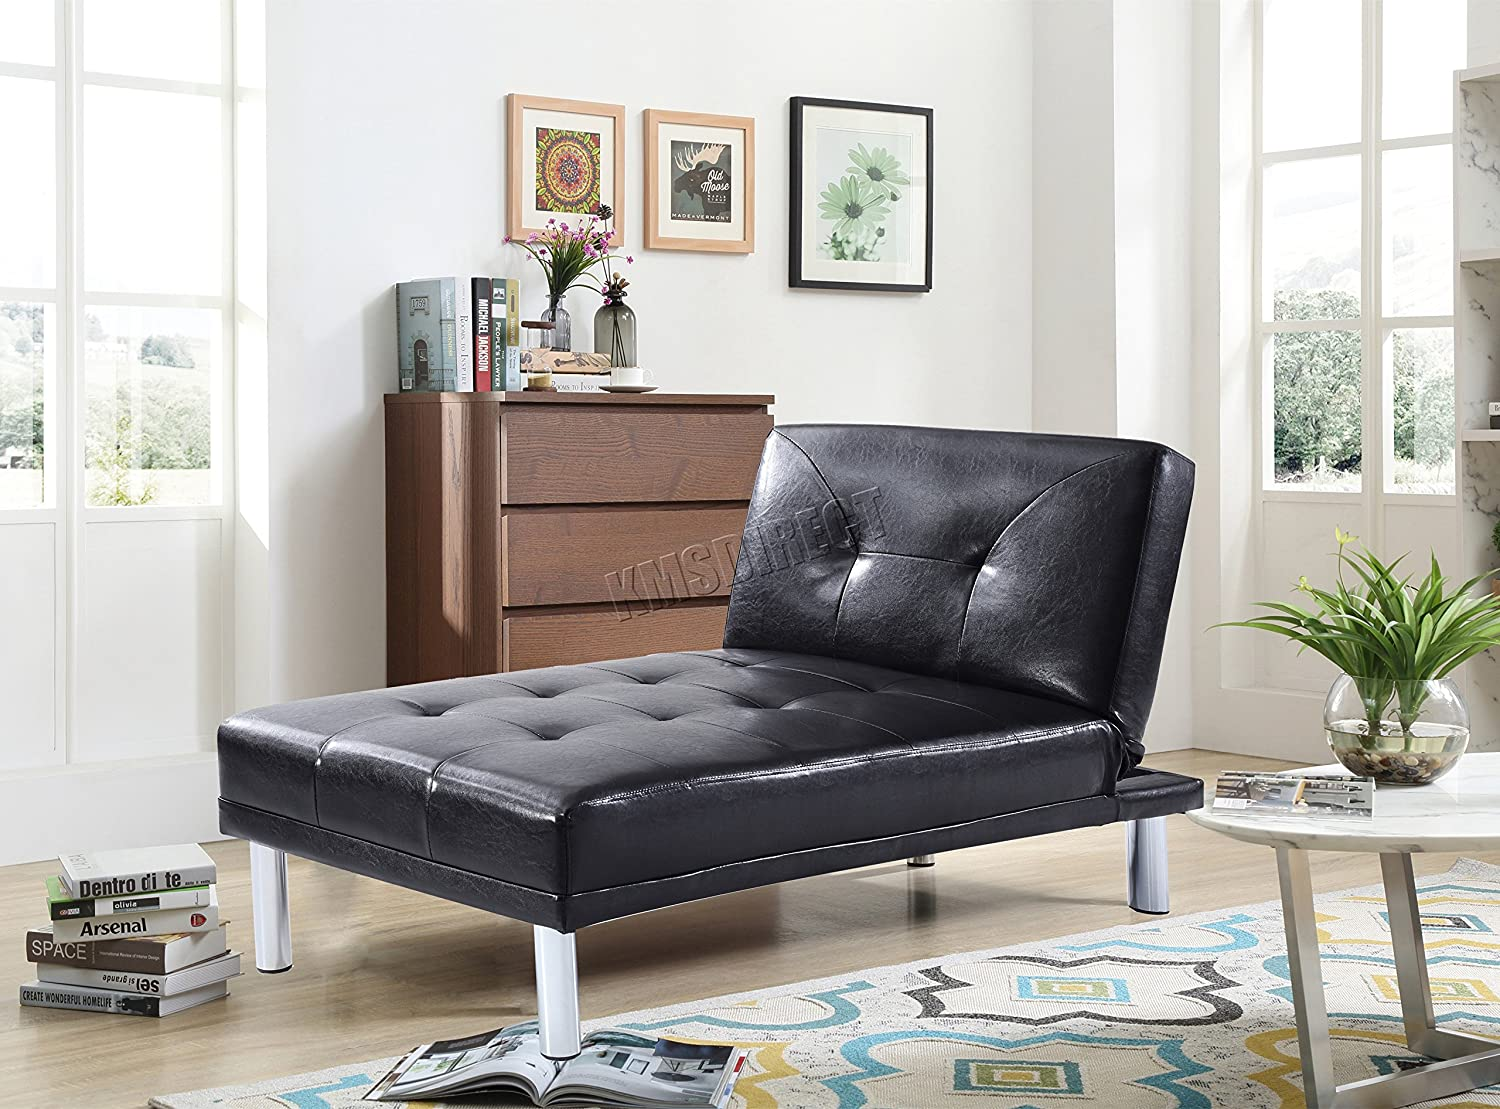 WestWood Modern Luxury Chaise Longue Single Sofa Bed 1 Seater Couch ...